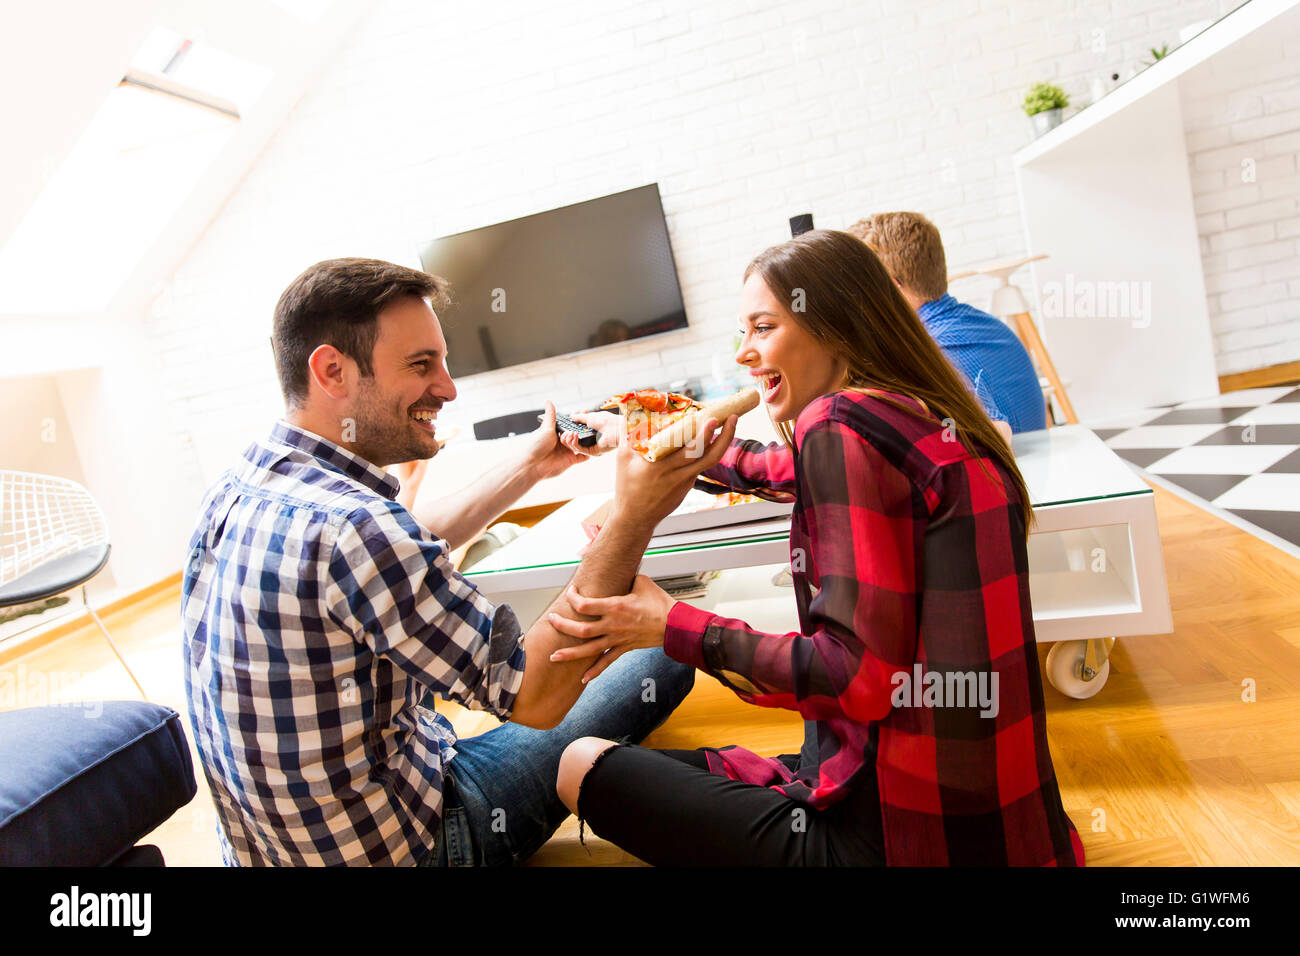 Couple eating pizza and a man holding tv remote control - Stock Image